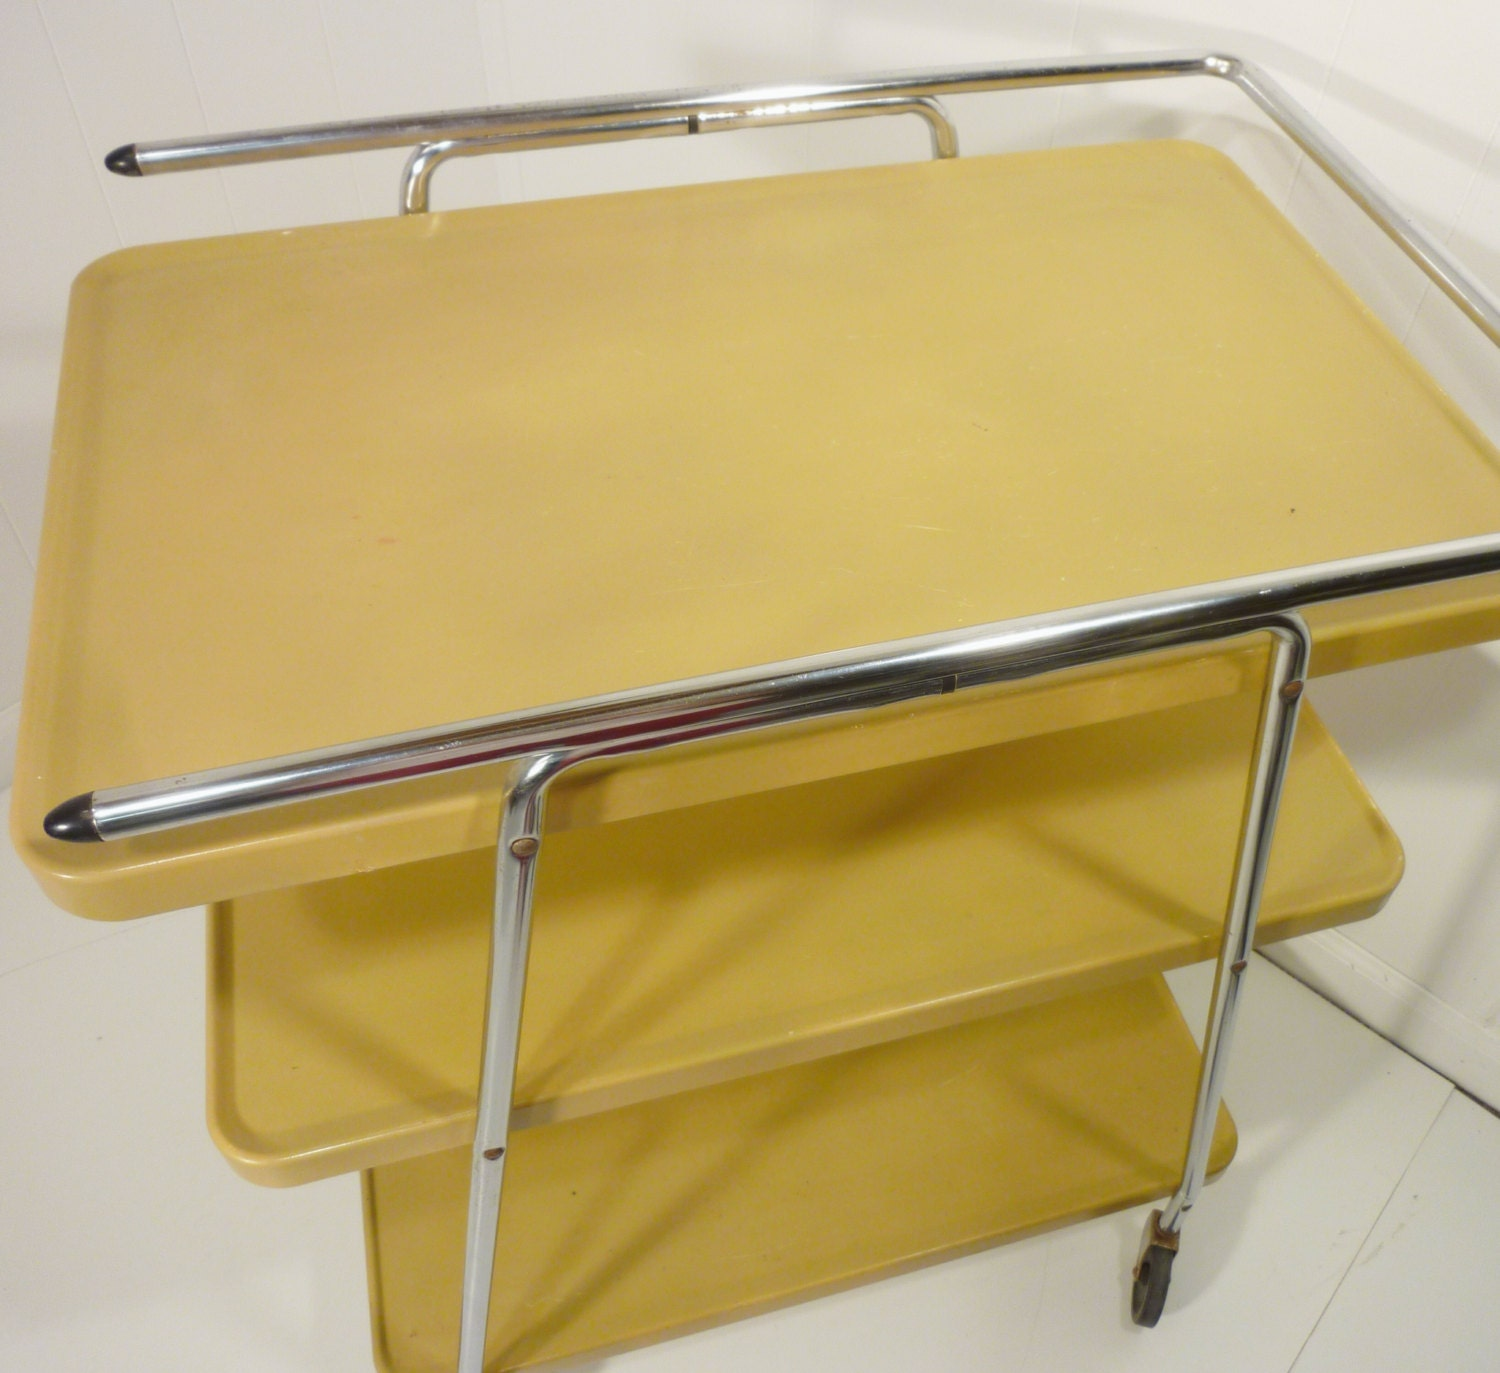 Cosco Chippy Red Metal Kitchen Cart Movable Painted Vintage: Cosco Gold Metal Kitchen Cart Movable Painted By Gillardgurl